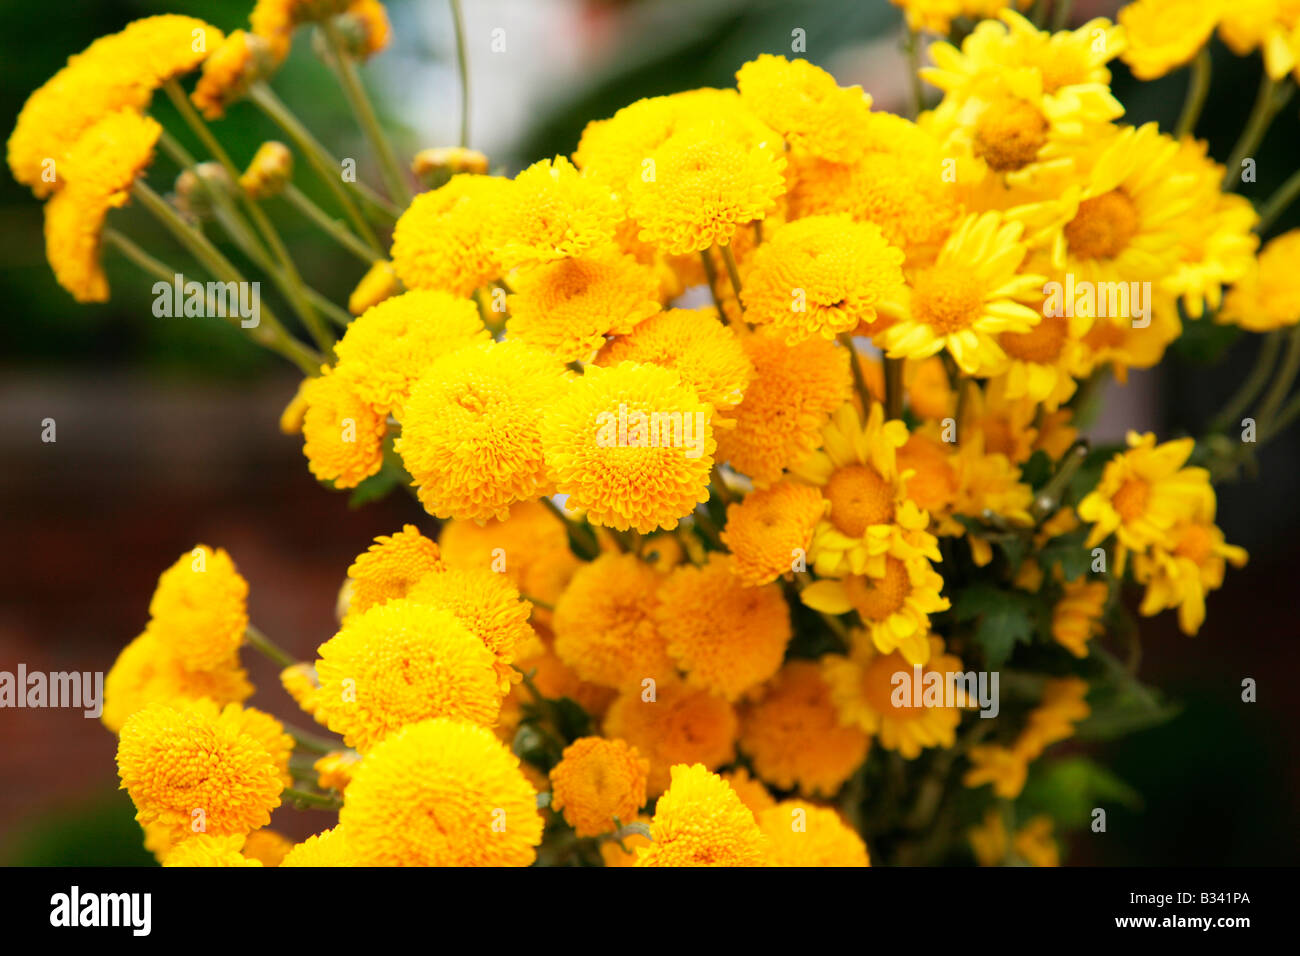 A bunch of yellow flowers stock photo 19143554 alamy a bunch of yellow flowers mightylinksfo